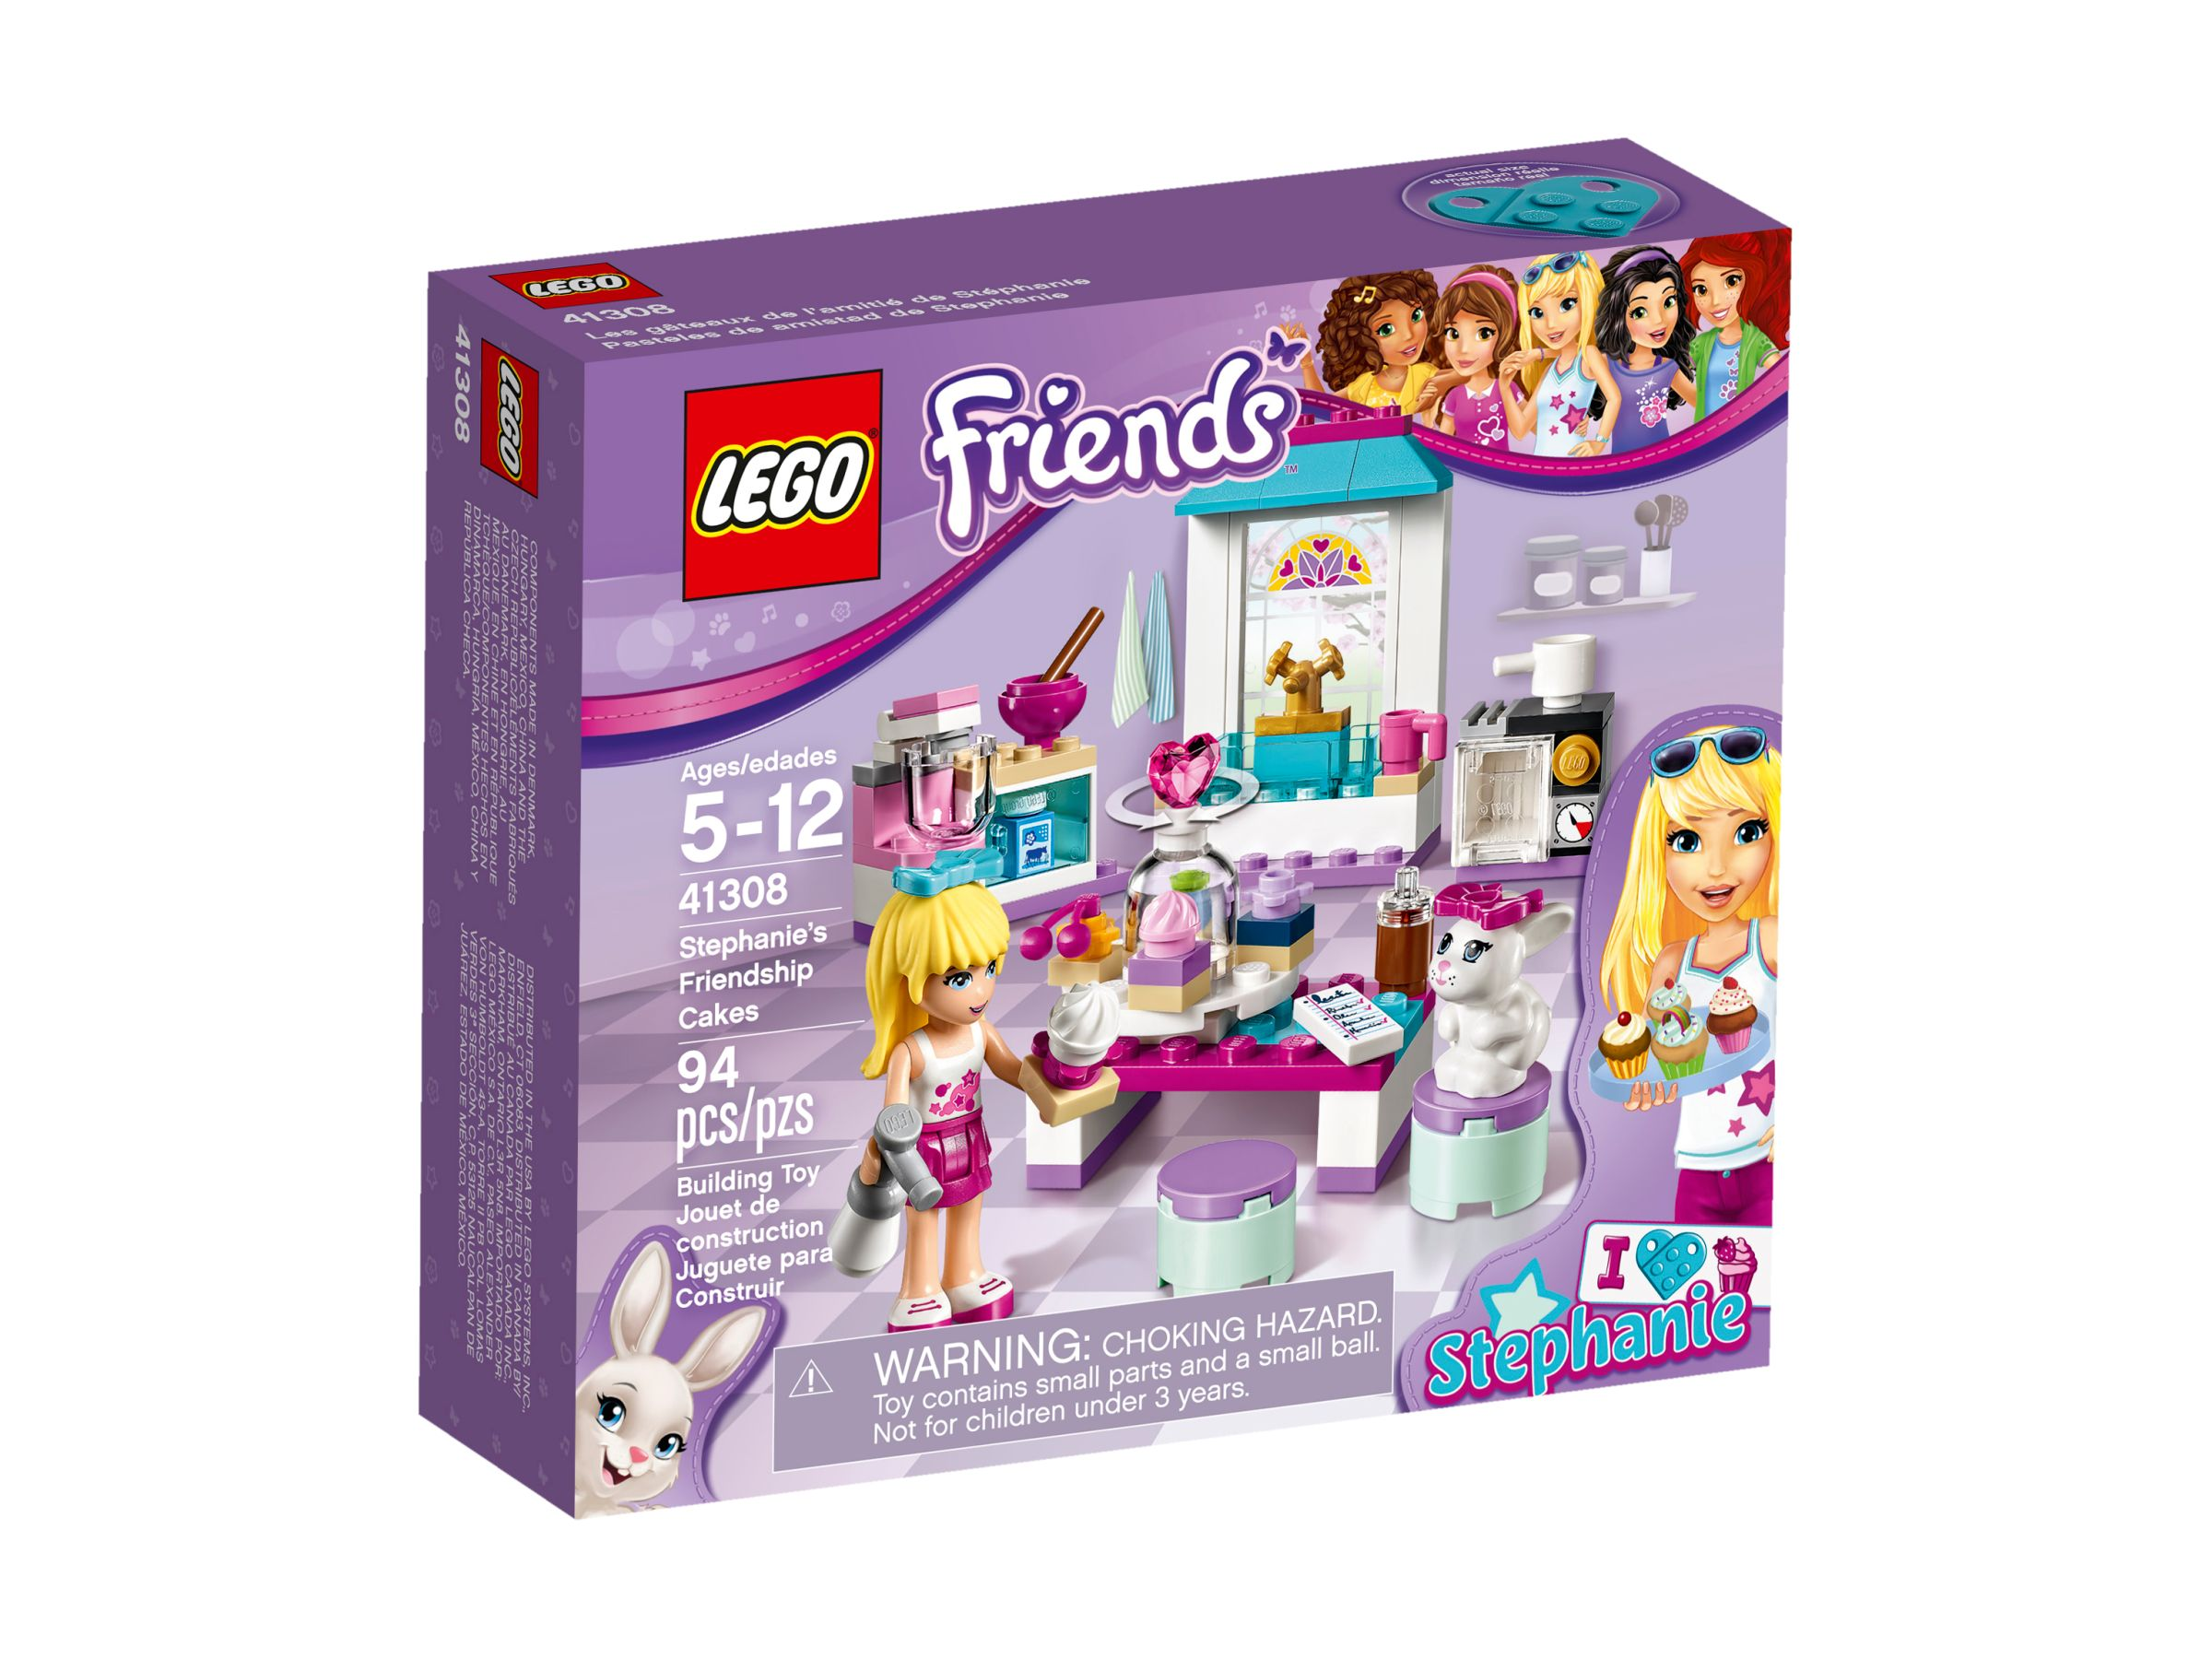 LEGO Friends 41308 Stephanies Backstube LEGO_41308_alt1.jpg